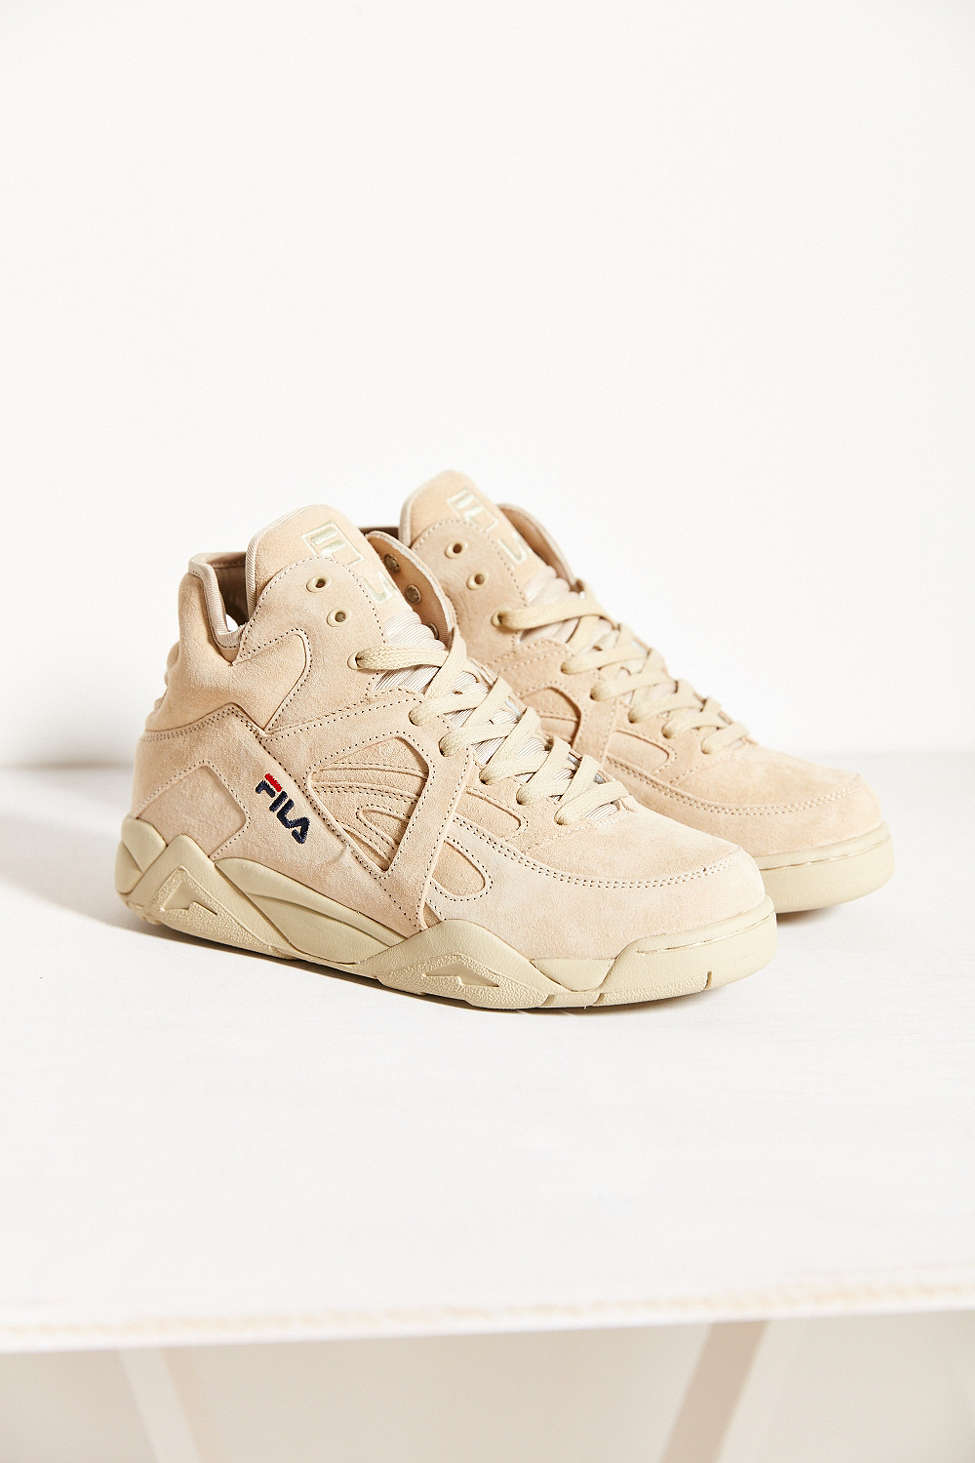 Van Haren Nike Urban Outfitters X Fila Cage 'cream' Makes The Fellas